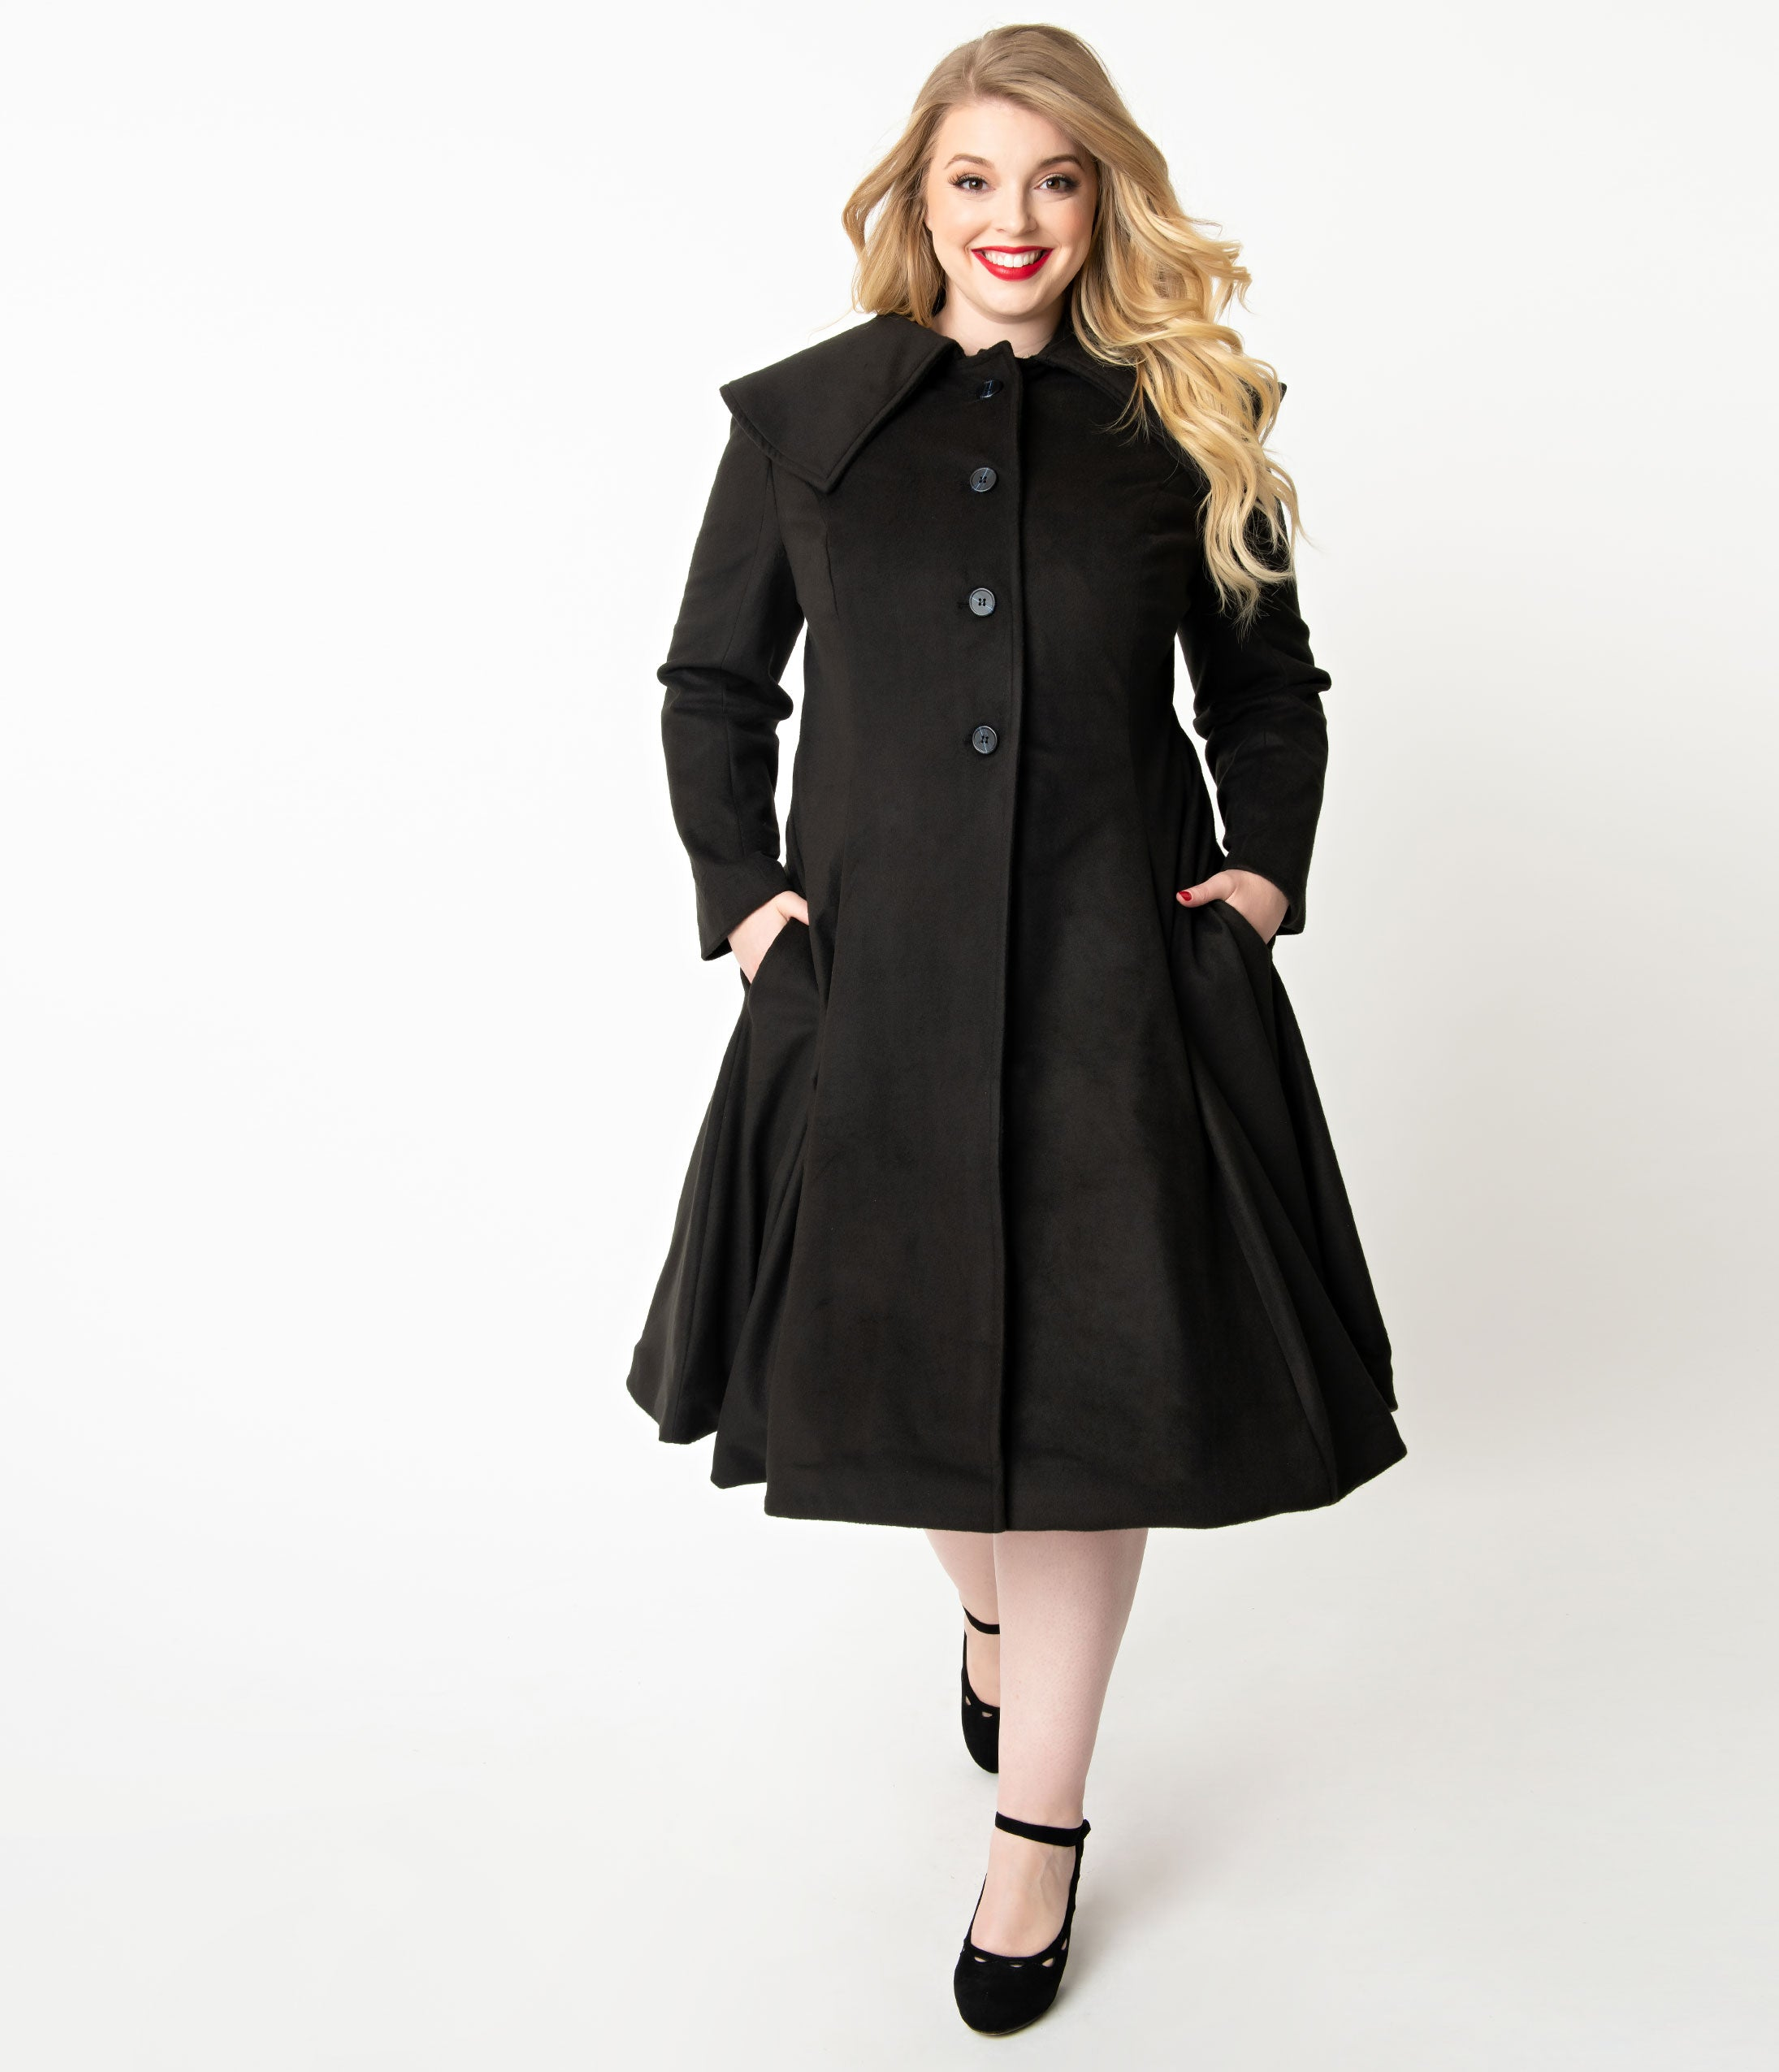 1940s Coats & Jackets Fashion History Unique Vintage Plus Size 1950S Style Black Collar Button Up Lillian Swing Coat $158.00 AT vintagedancer.com